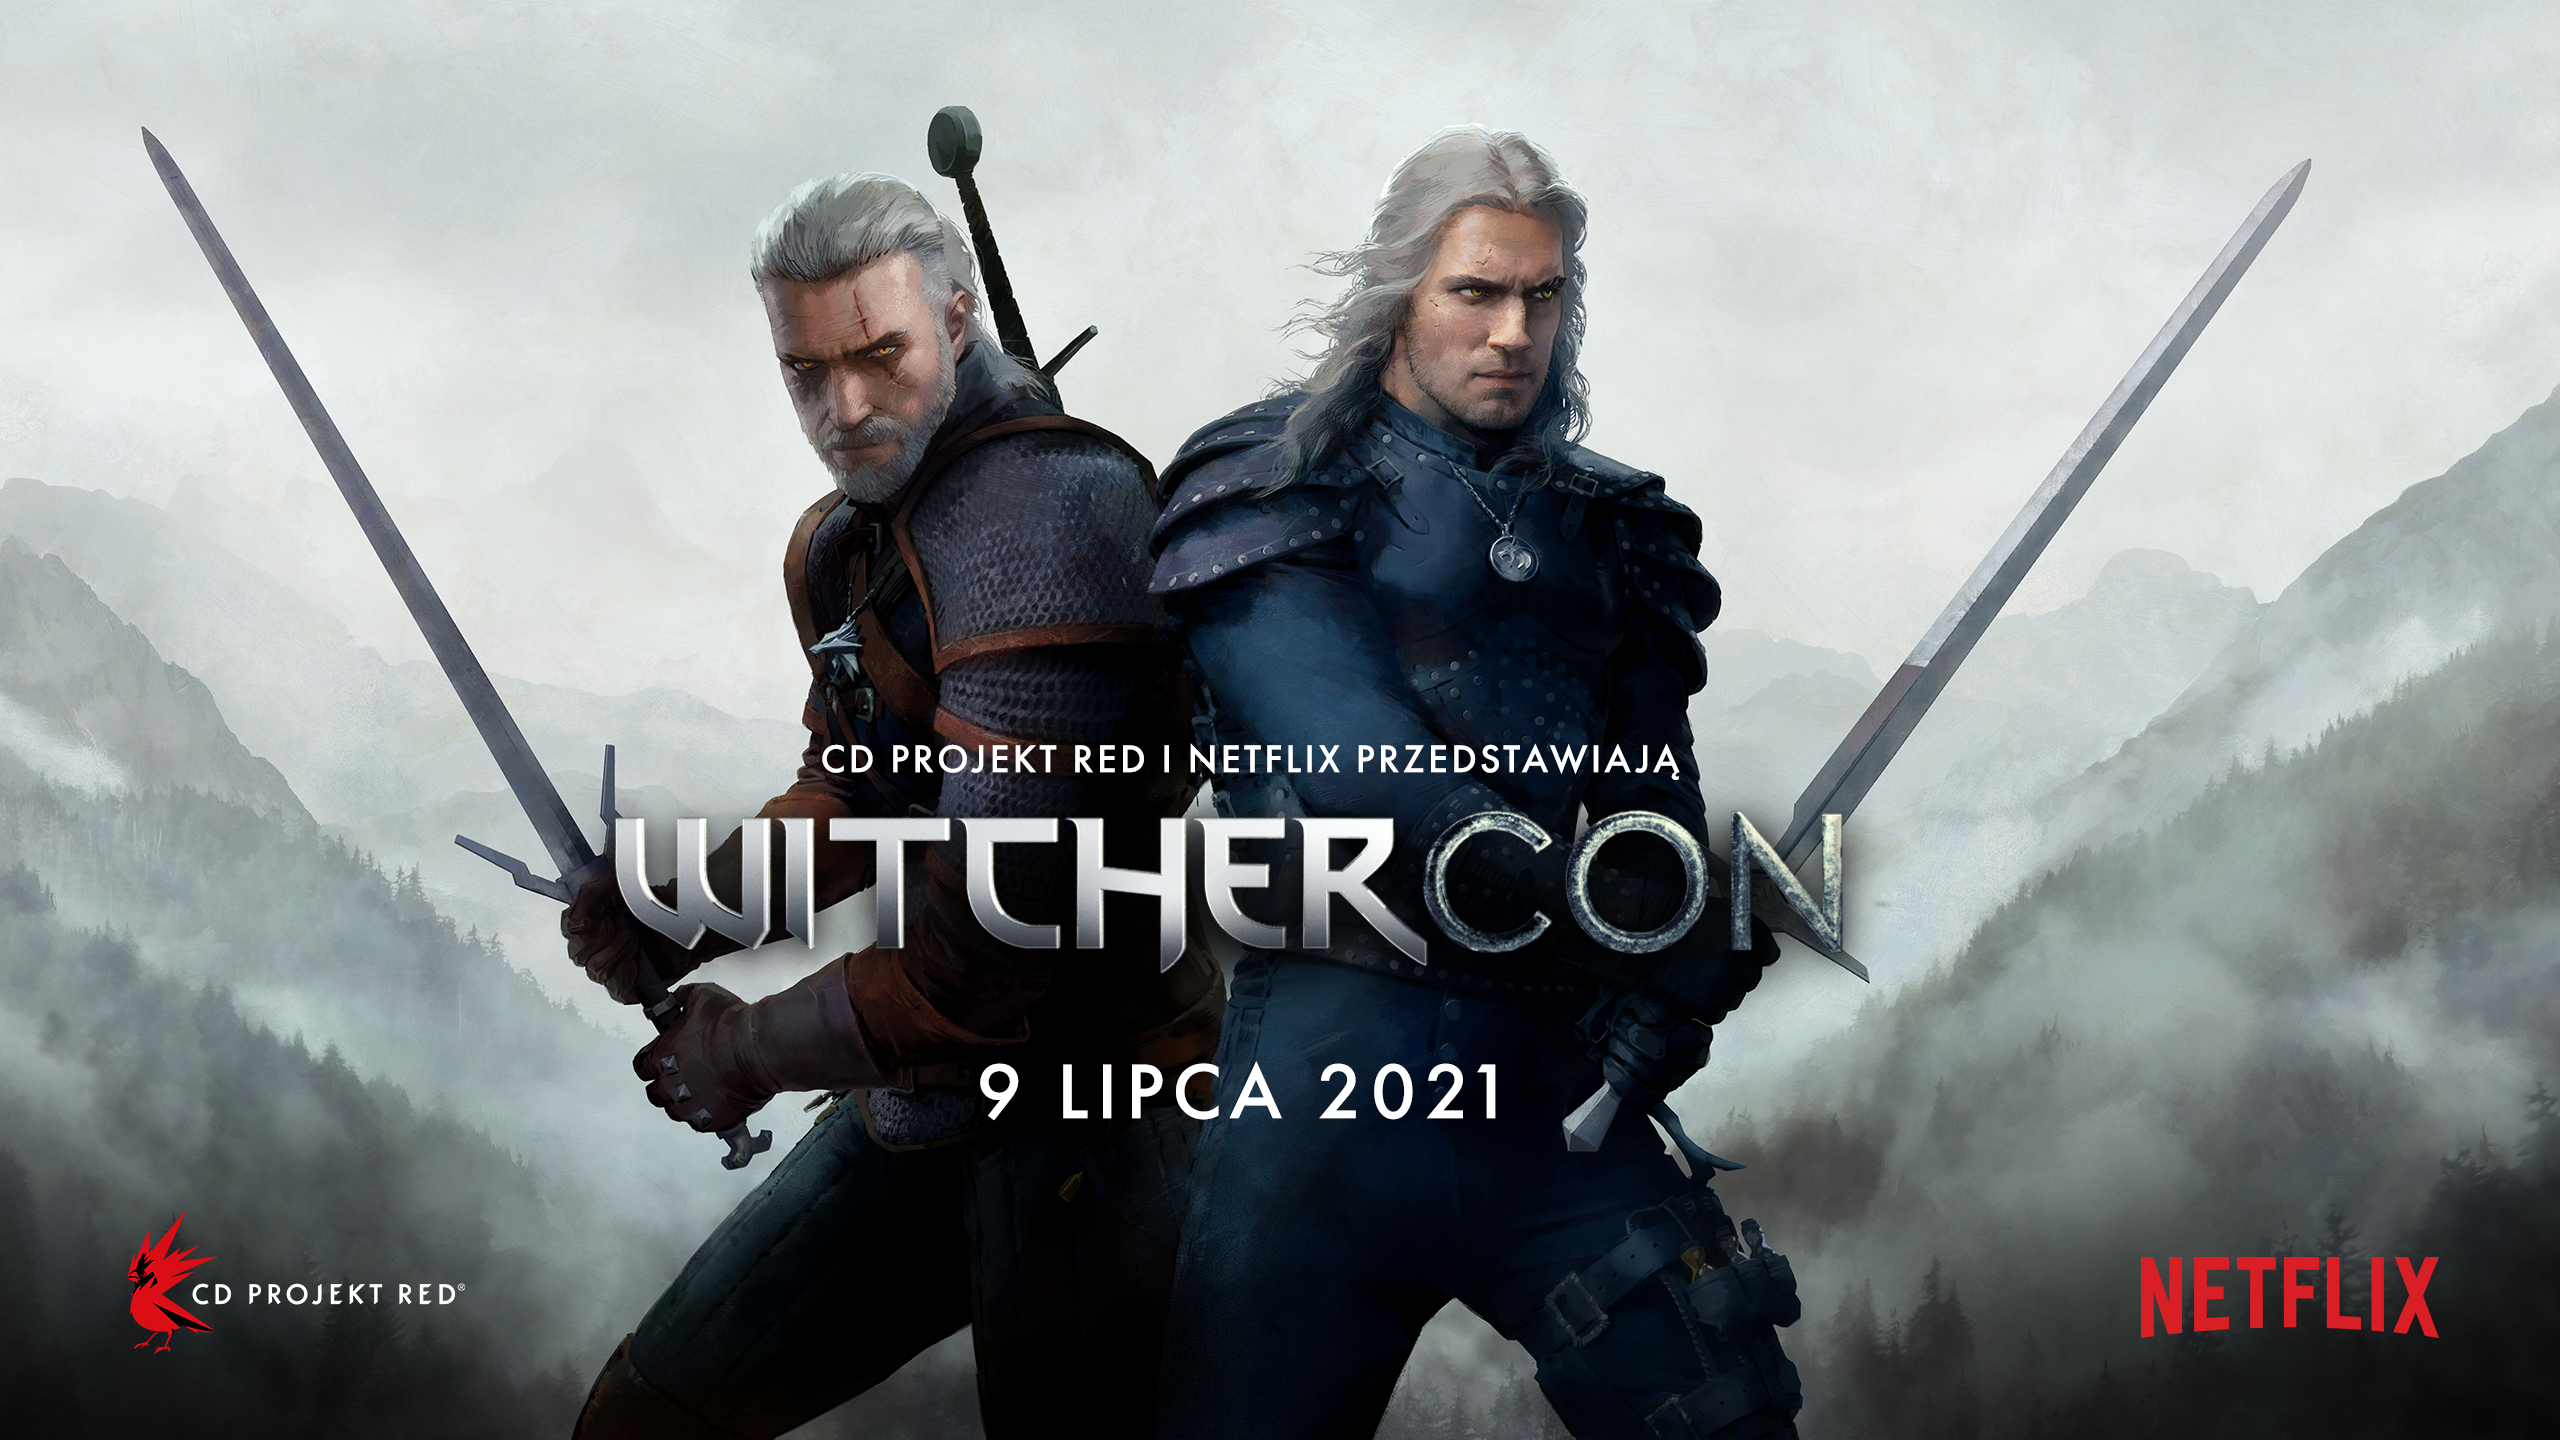 WitcherCon_PL_16_9.png